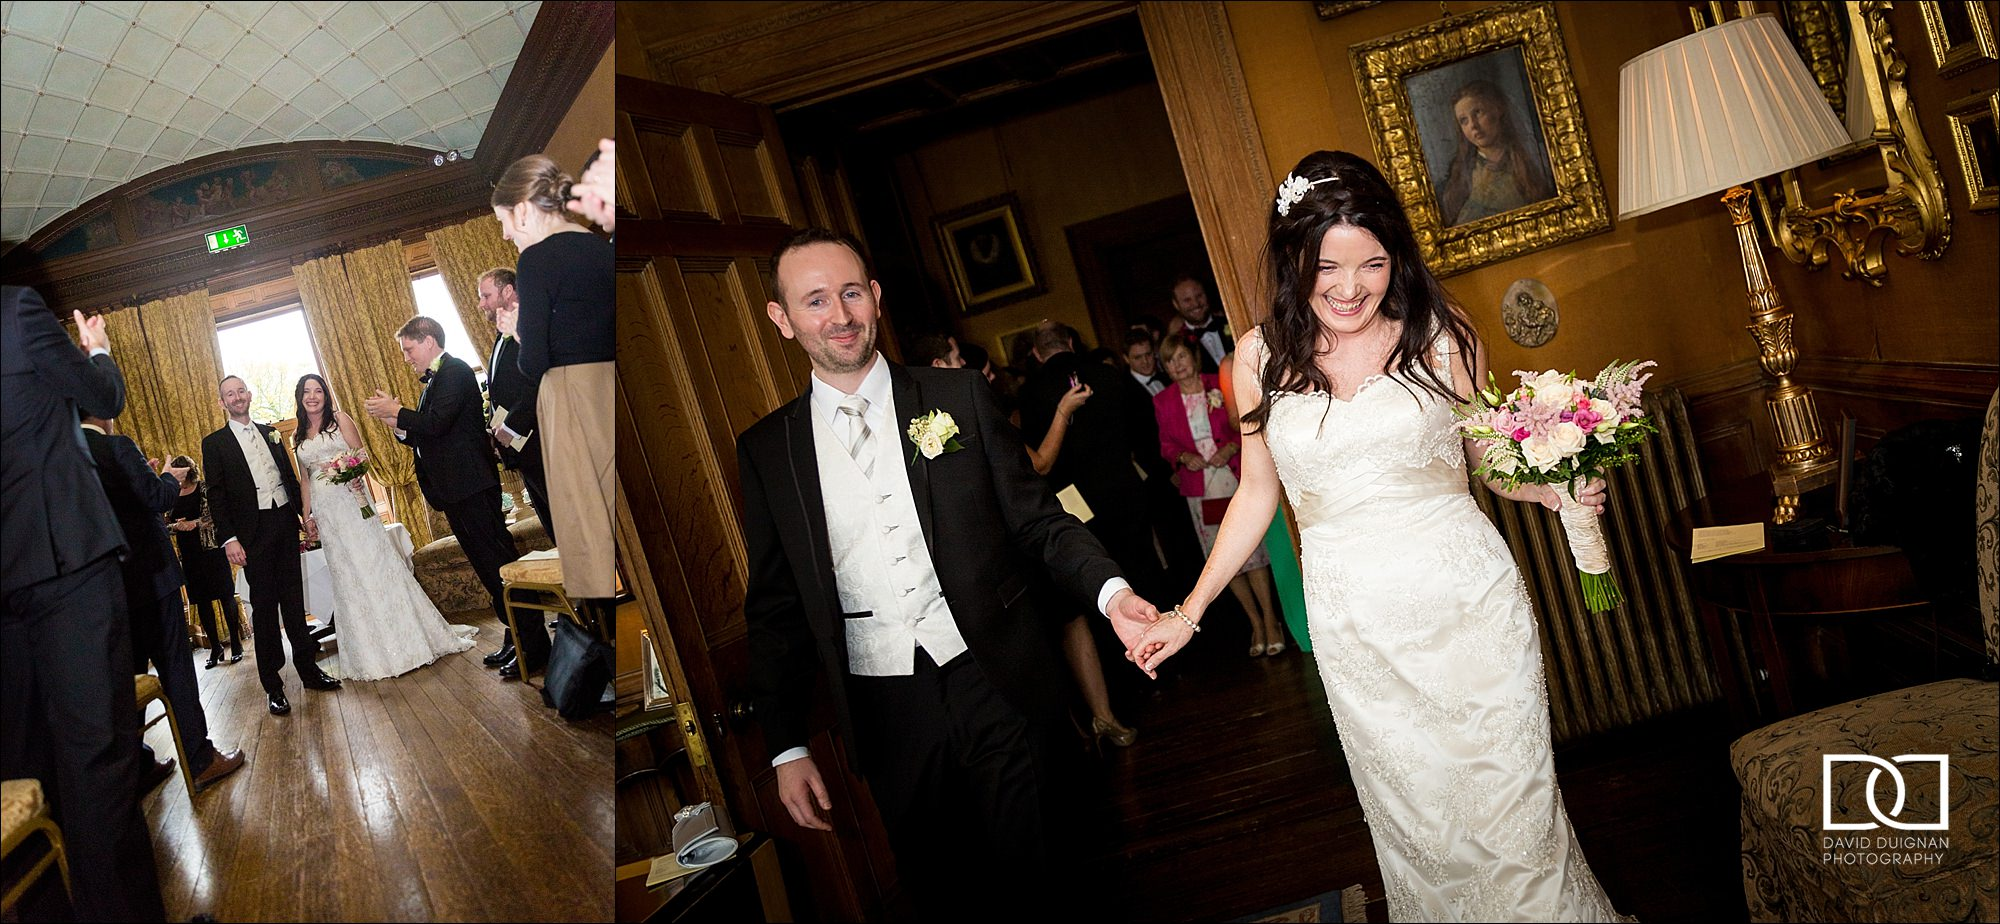 dublin wedding photographer david duignan photography castle leslie weddings Ireland 0019